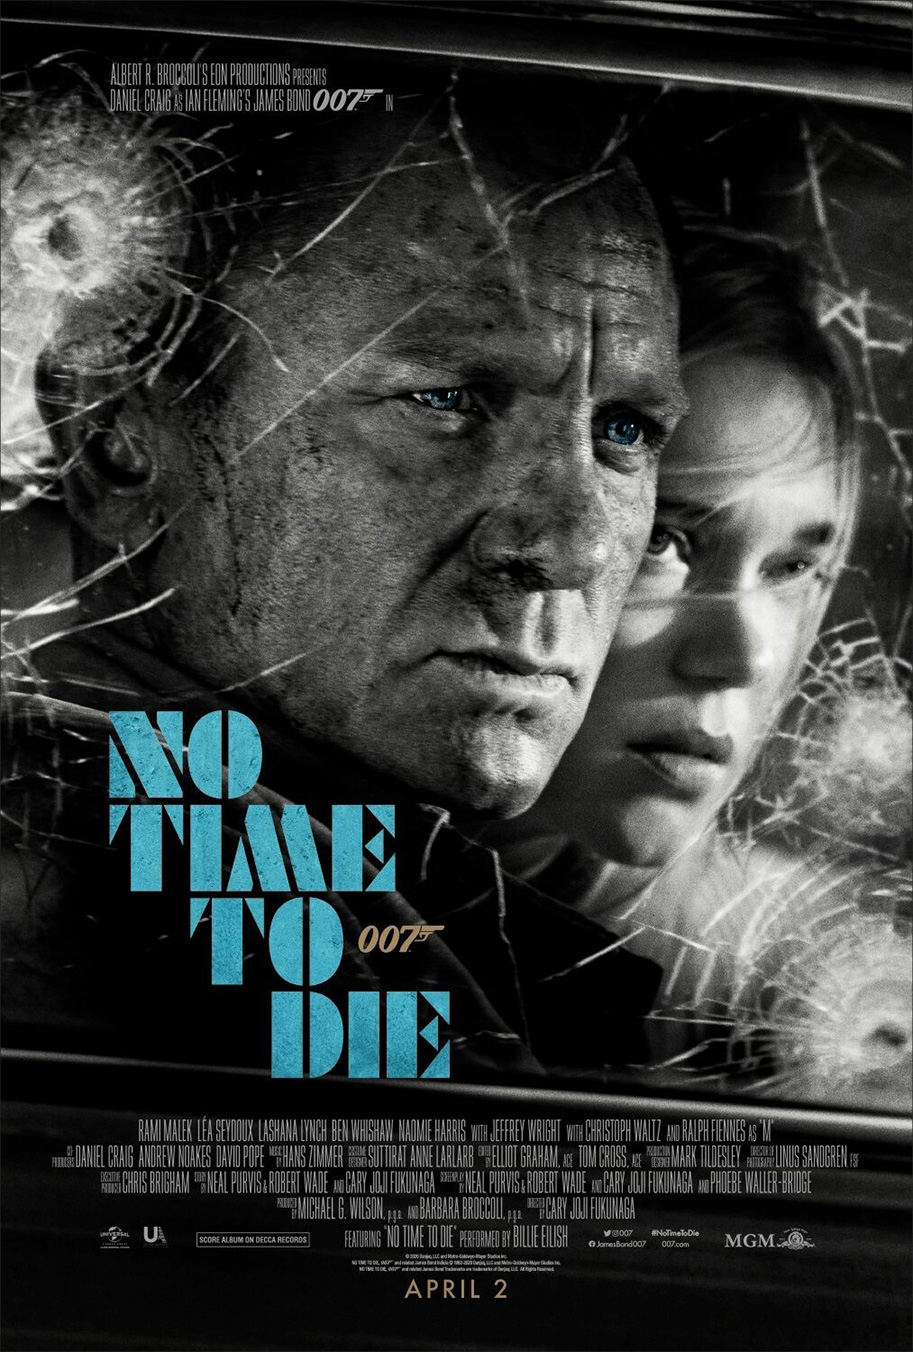 NO TIME TO DIE POSTER (#4 OF 12) - OKAY BHARGAV